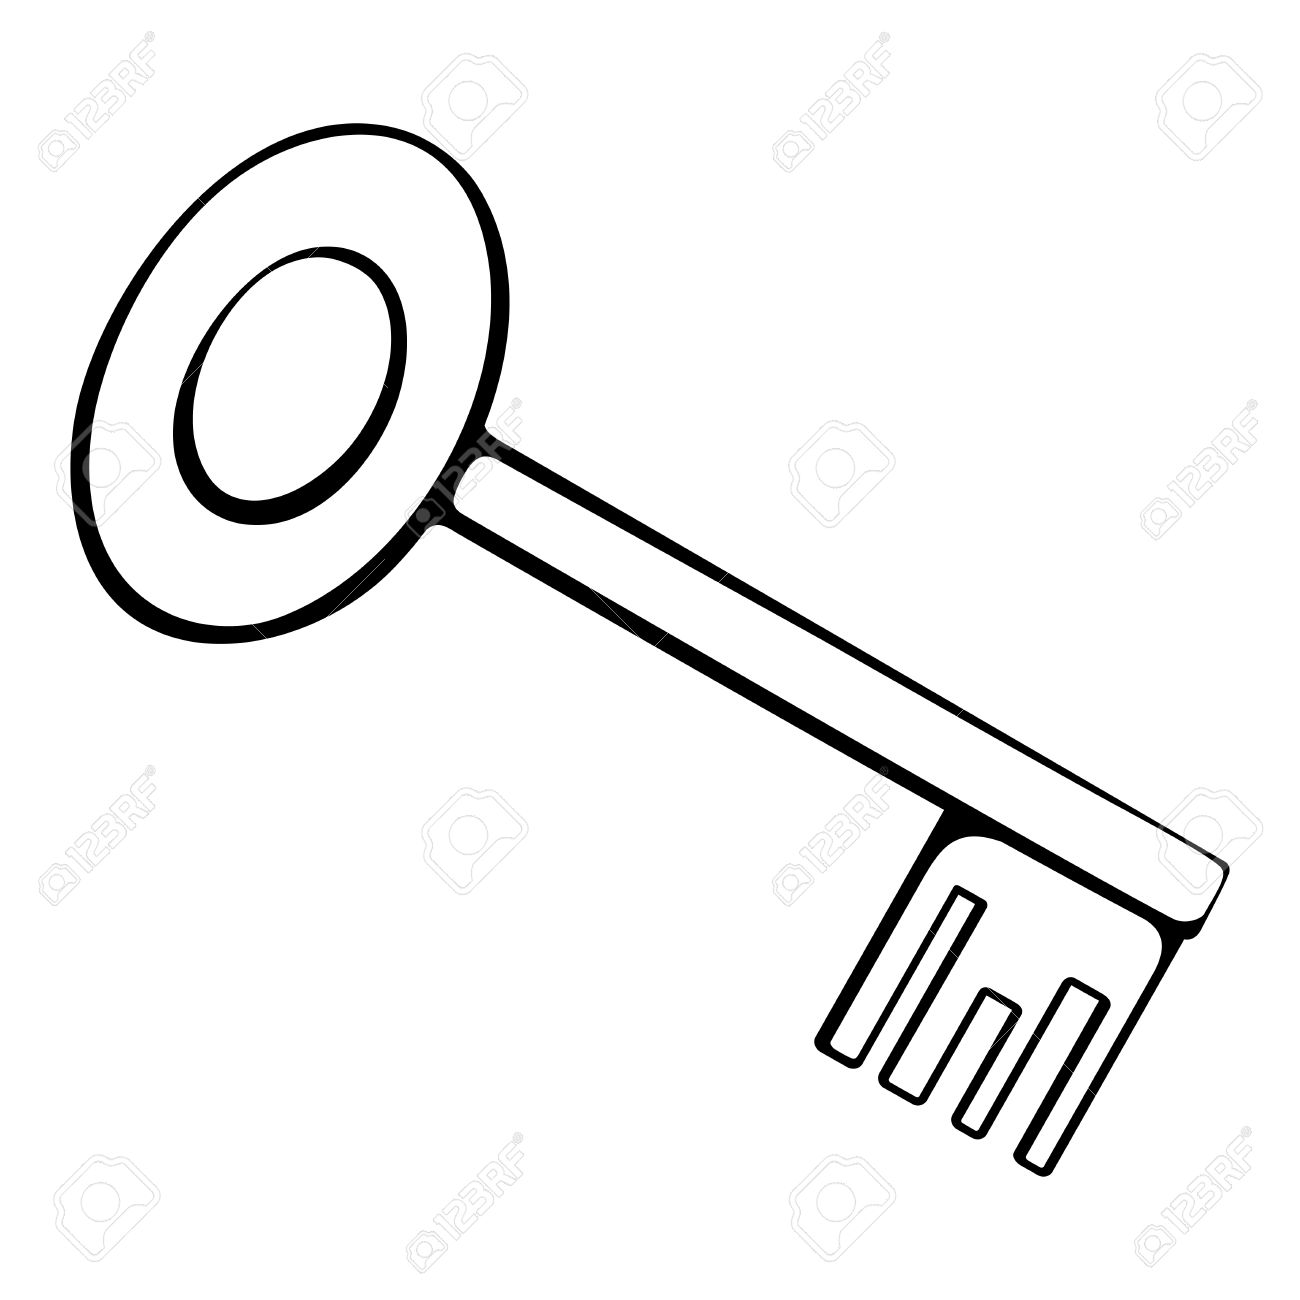 Outline Of A Key Clipart